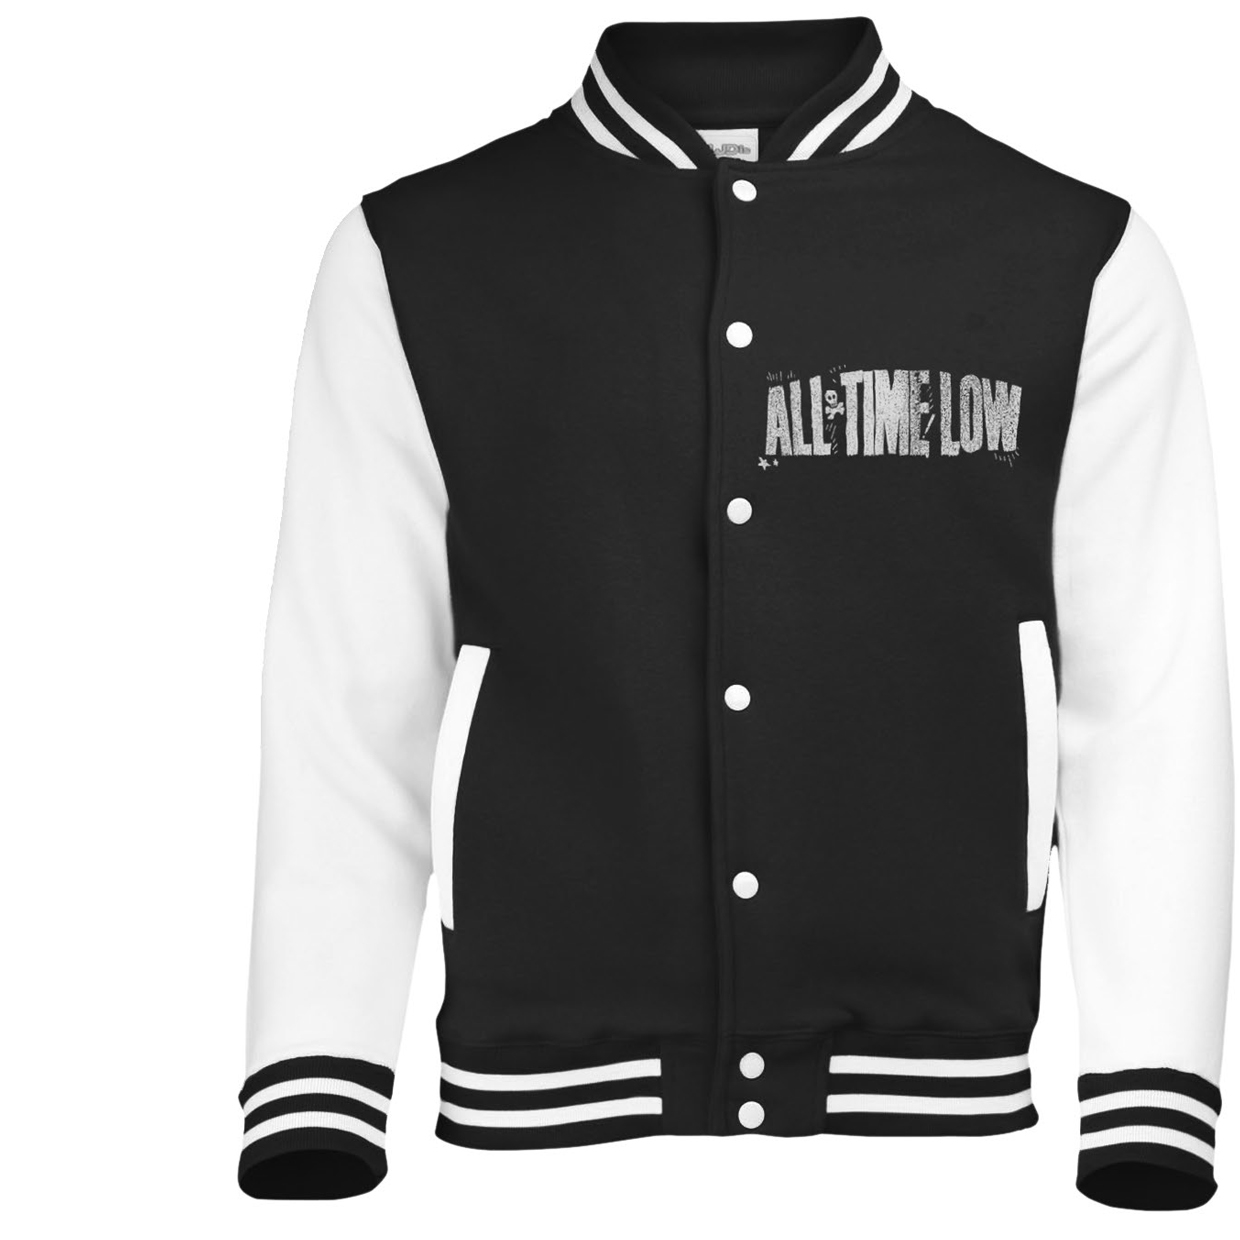 Sea Sick - All Time Low - Merchandise - PHM - 0803341433854 - June 2, 2014